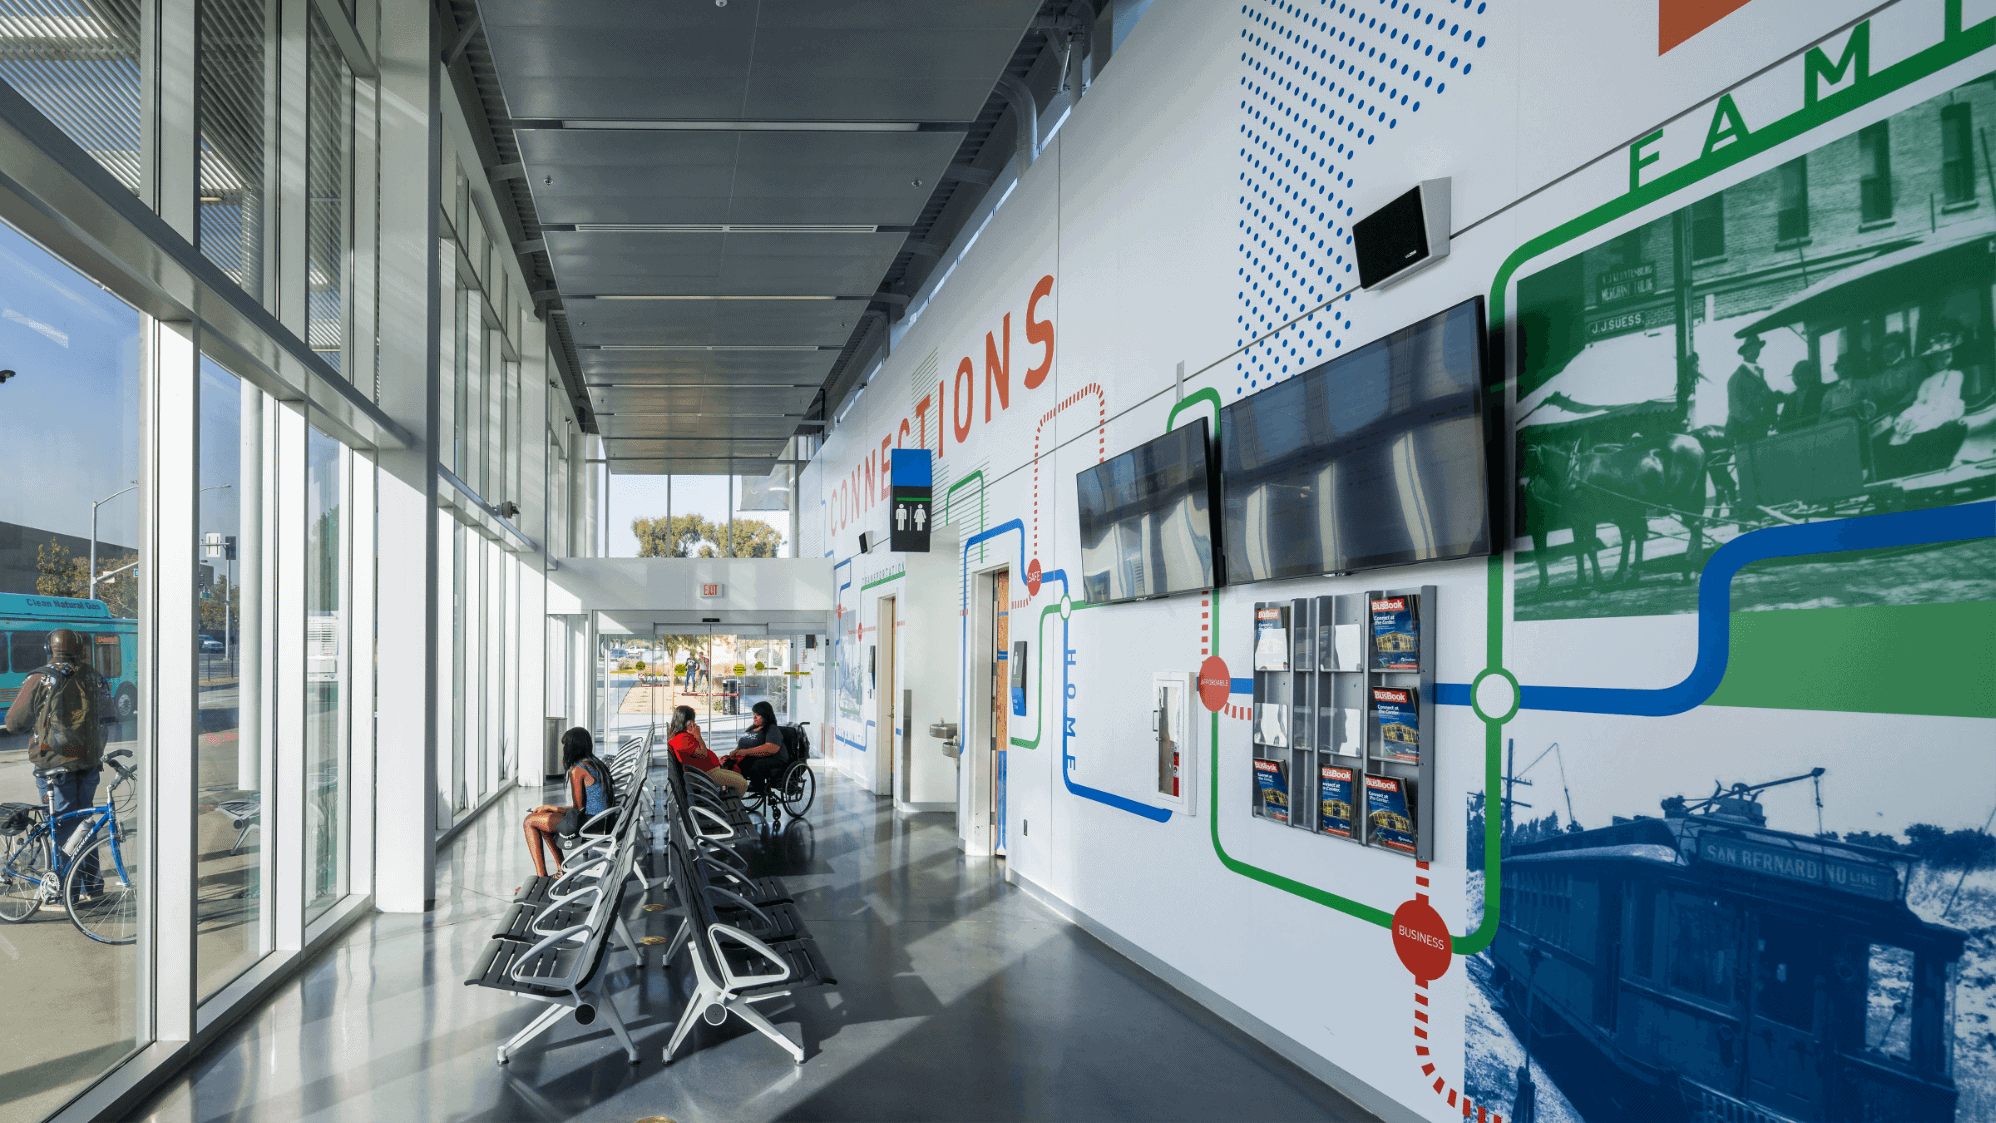 Image of San Bernardino Transit Center interior